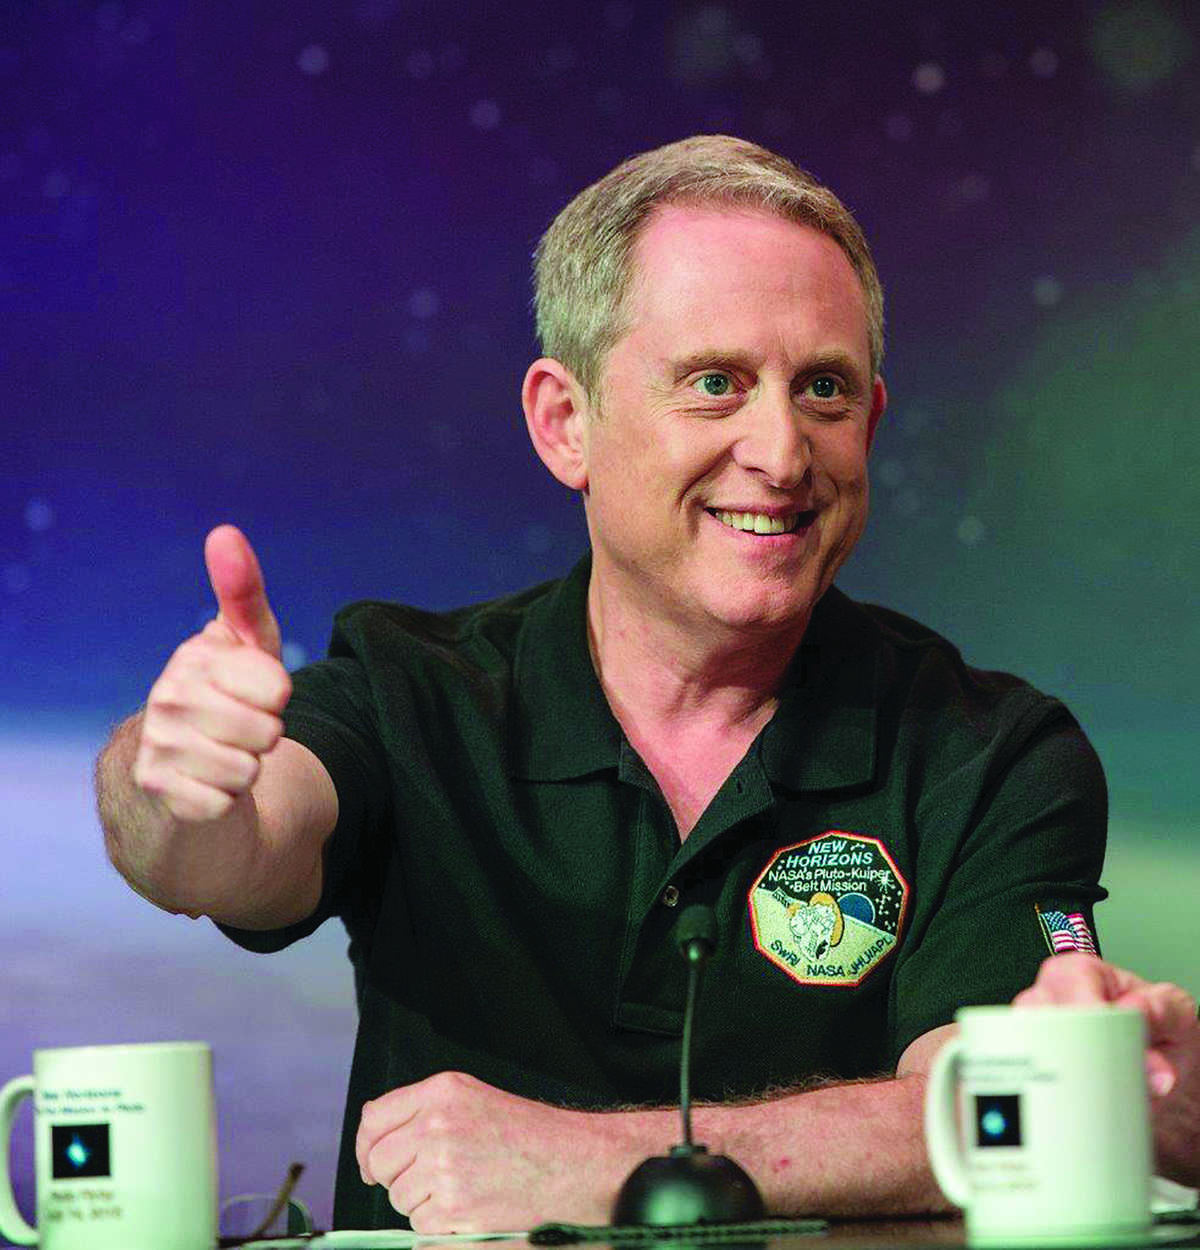 Dr. Alan Stern, associate vice president of the Space Science and Engineering Division at Southwest Research Institute